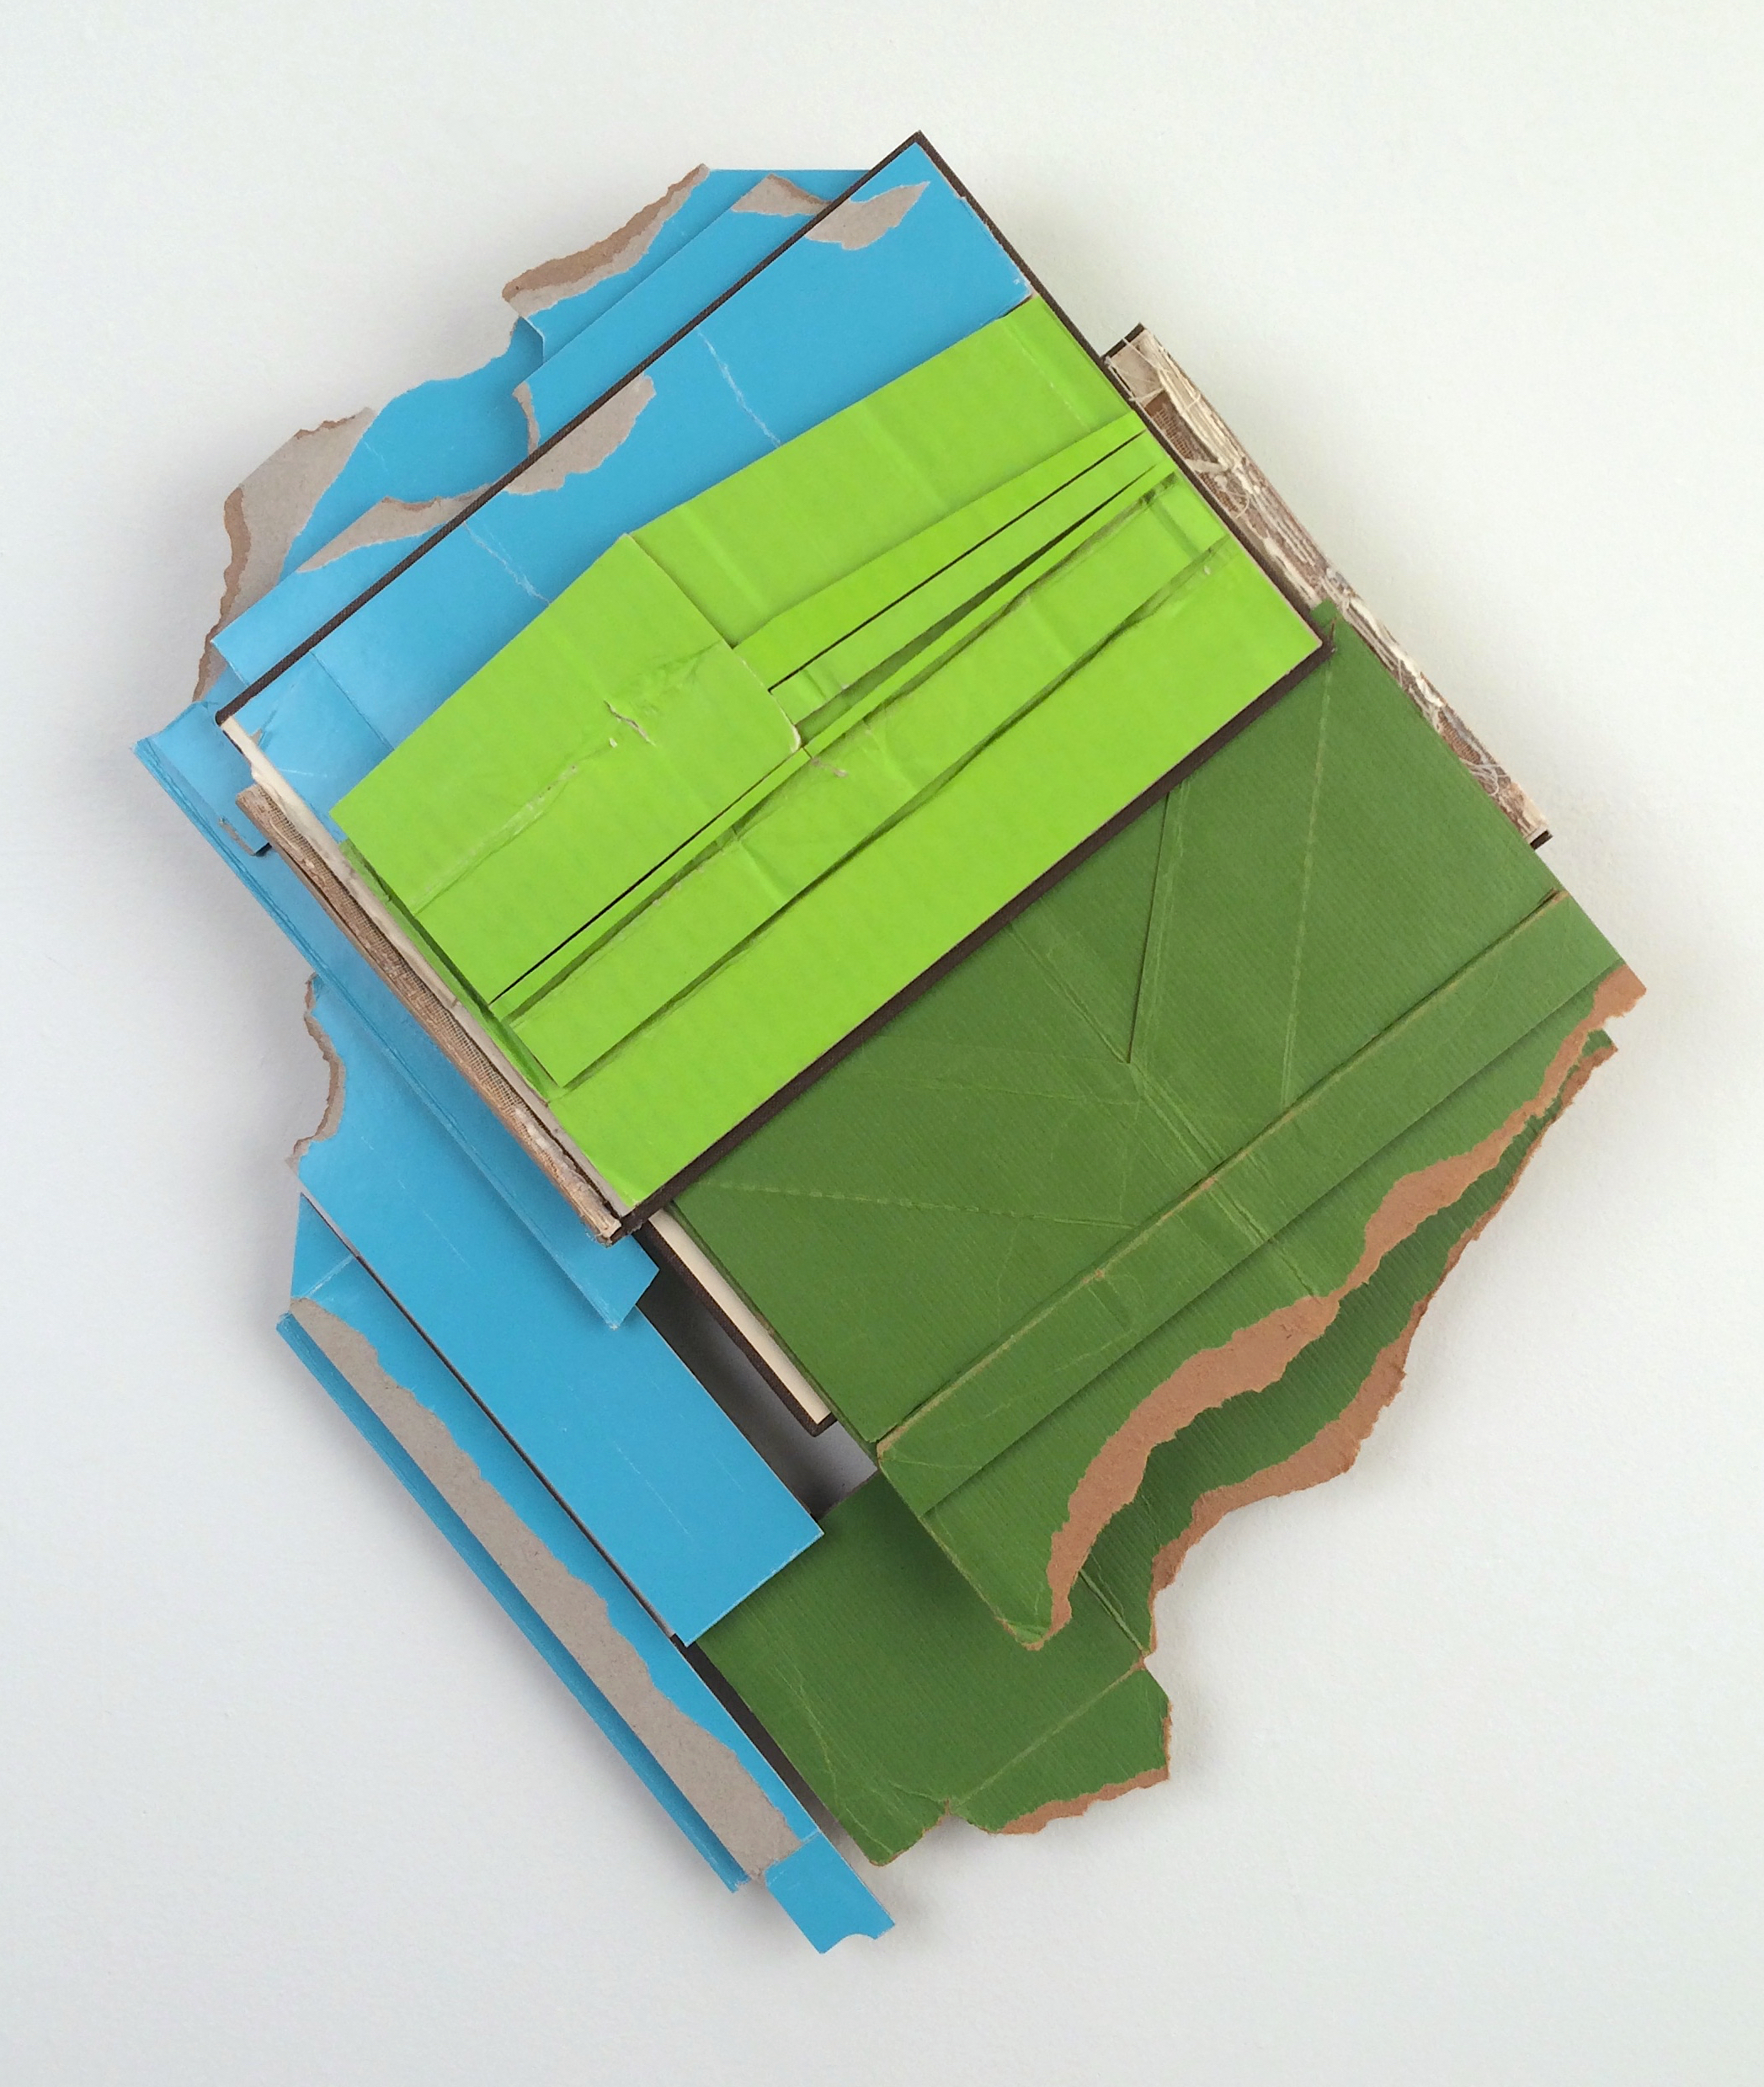 Track Record  , 2018  found (unpainted) cardboard, cut book cover, foamcore  20.5 x 17 x 2.75 inches